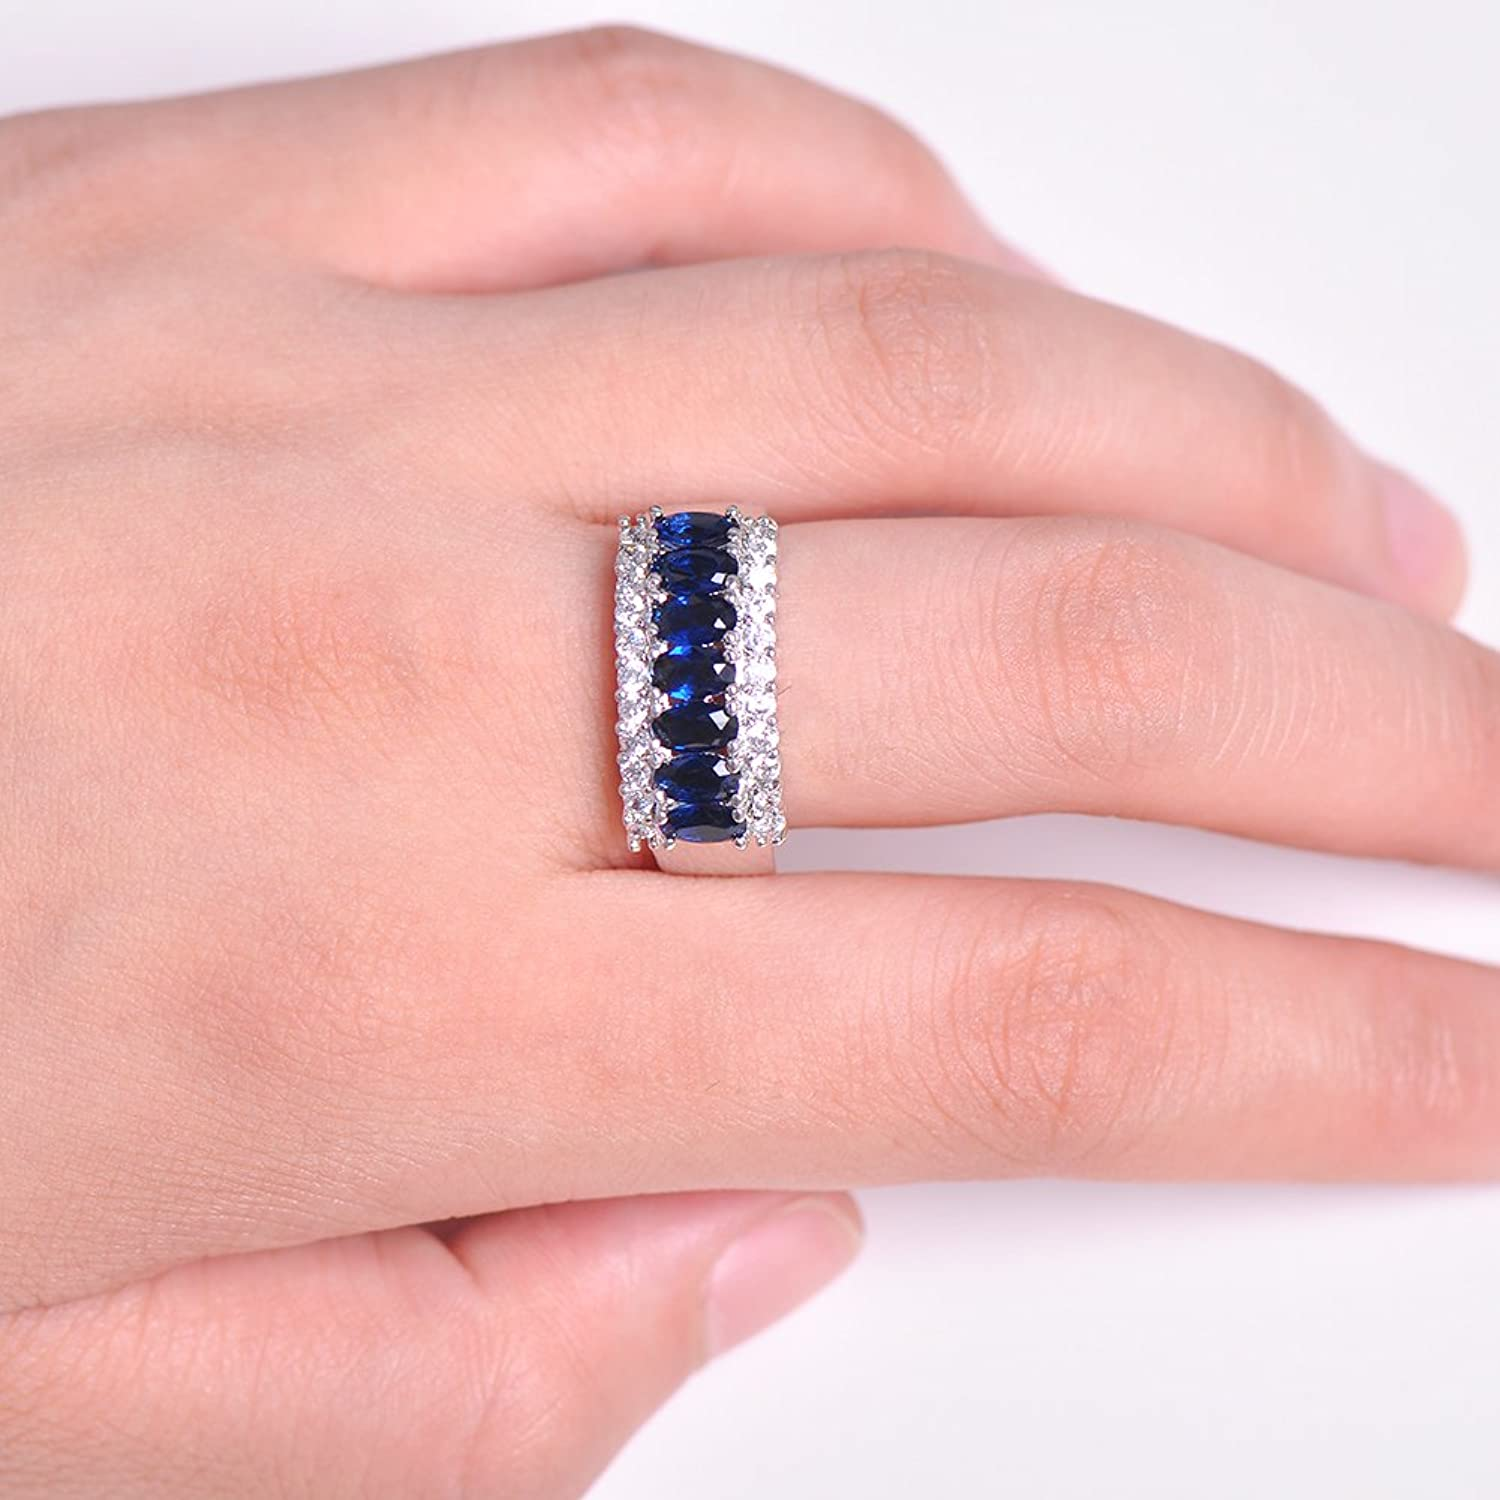 Amazon.com: Rings Jewelry 925 Sterling Silver Women Ring Full CZ ...